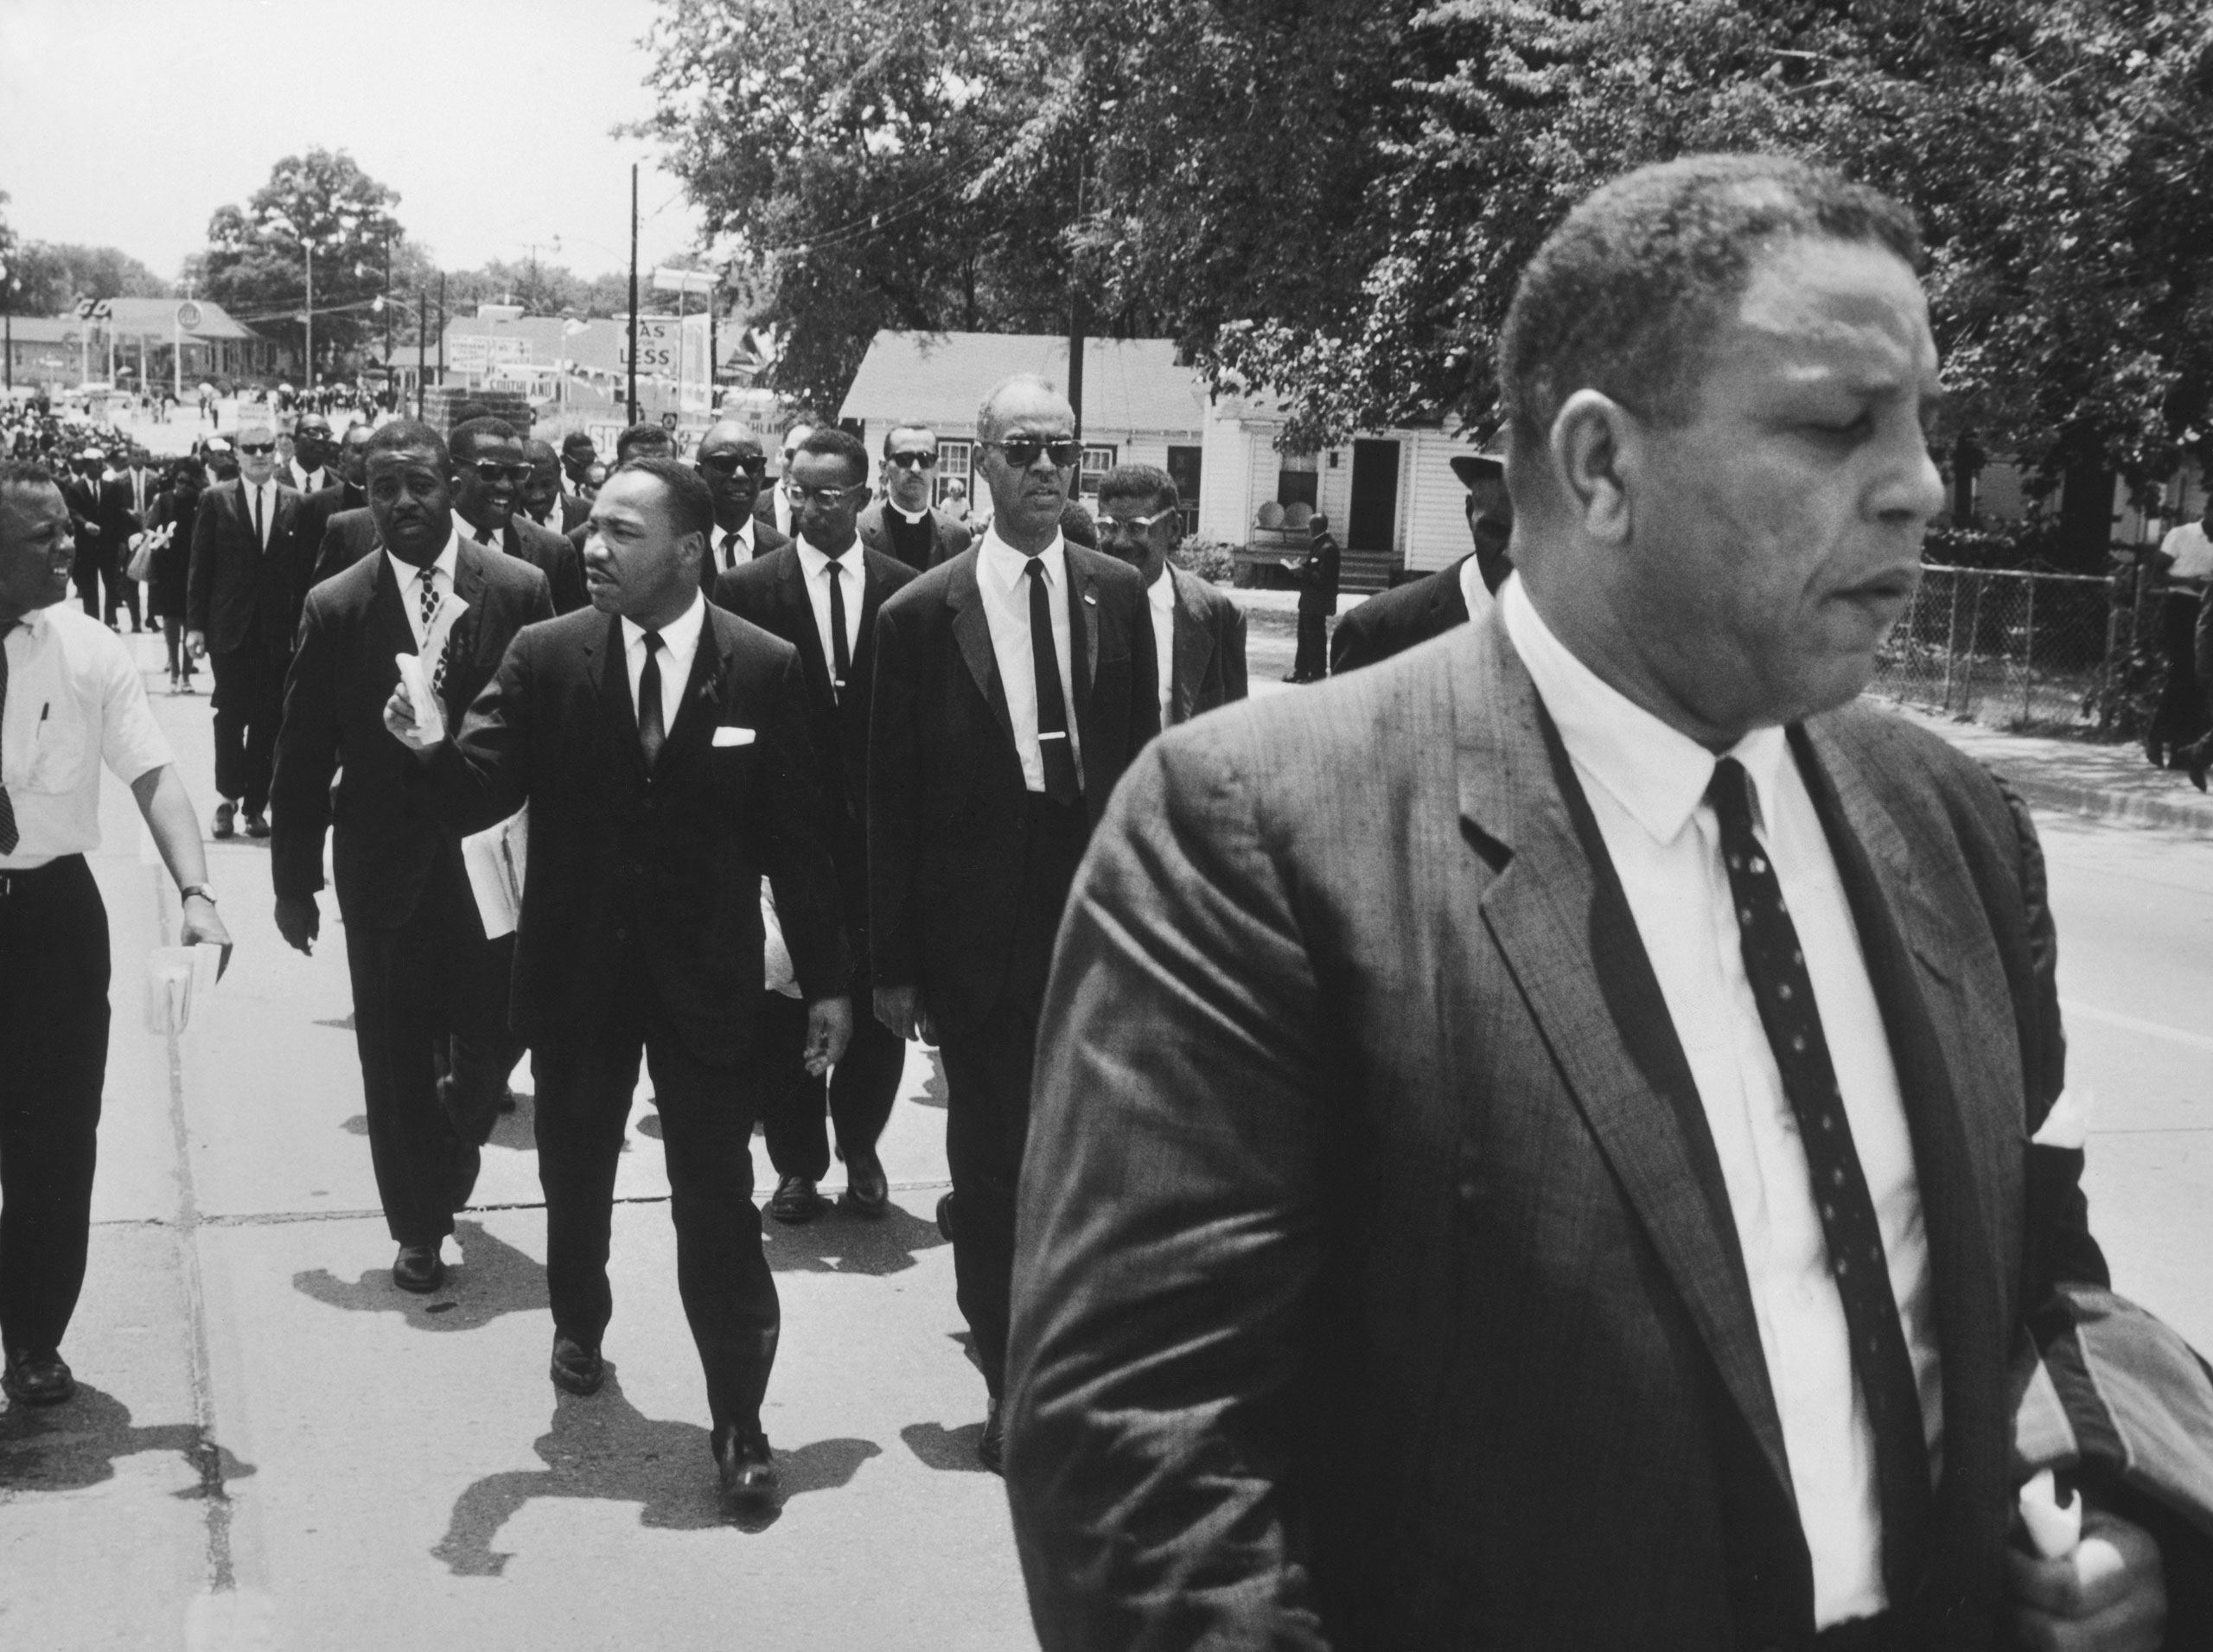 Martin Luther King, Jr., Ralph Abernathy and other civil rights leaders walk in Medgar Evers' funeral procession, Jackson, Miss..